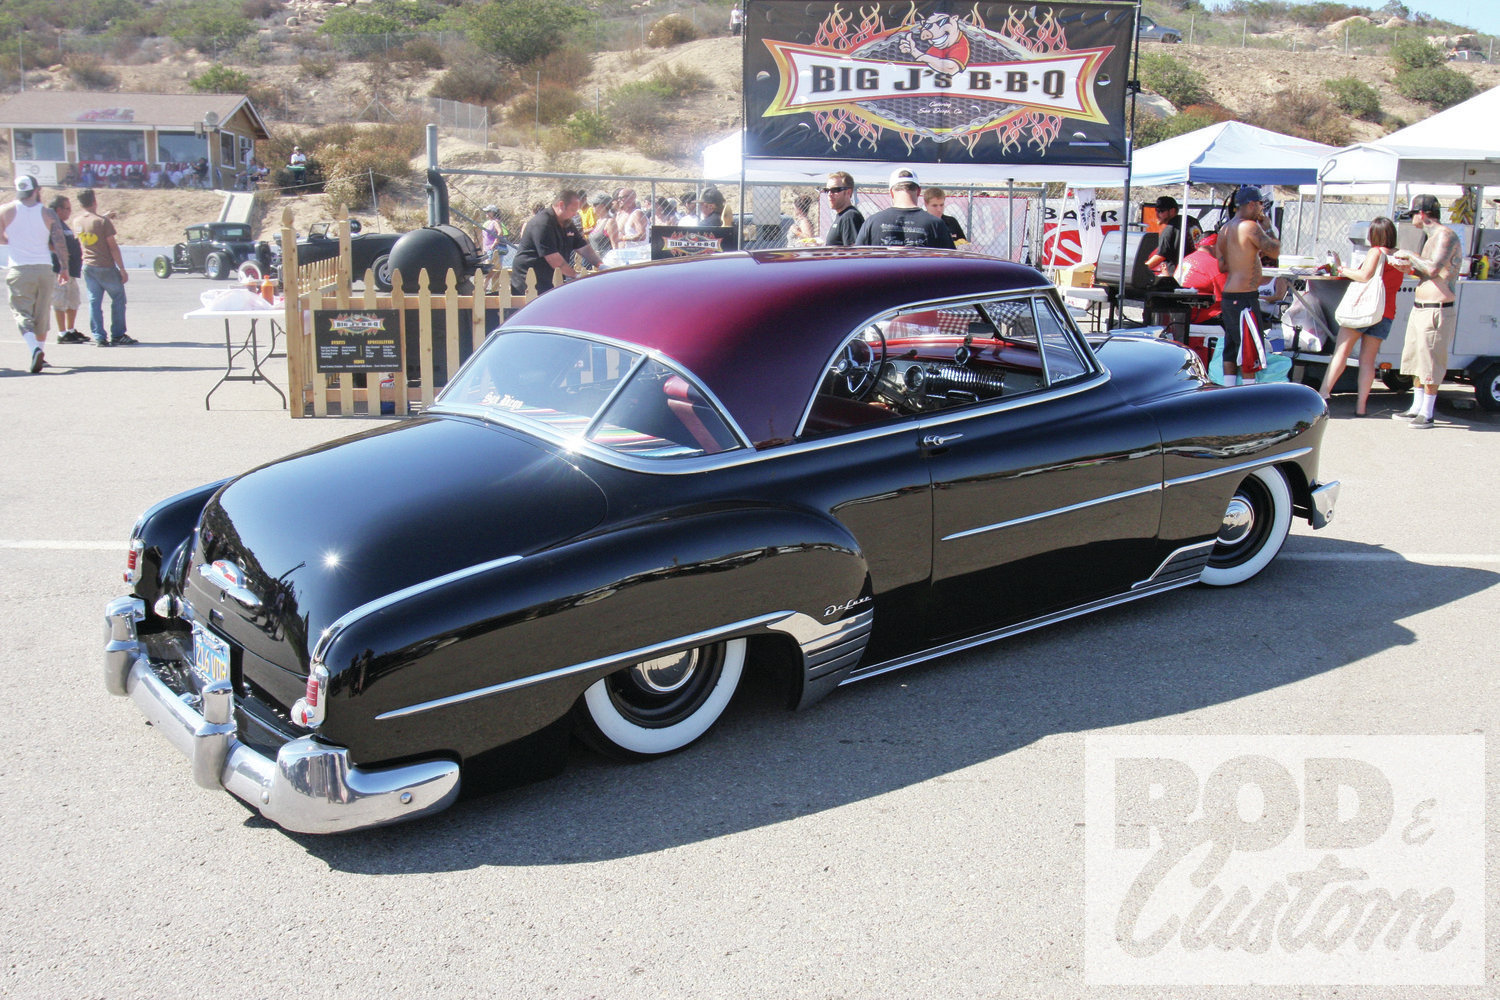 Classy Chevy hardtop proves mild customs can be killer too!